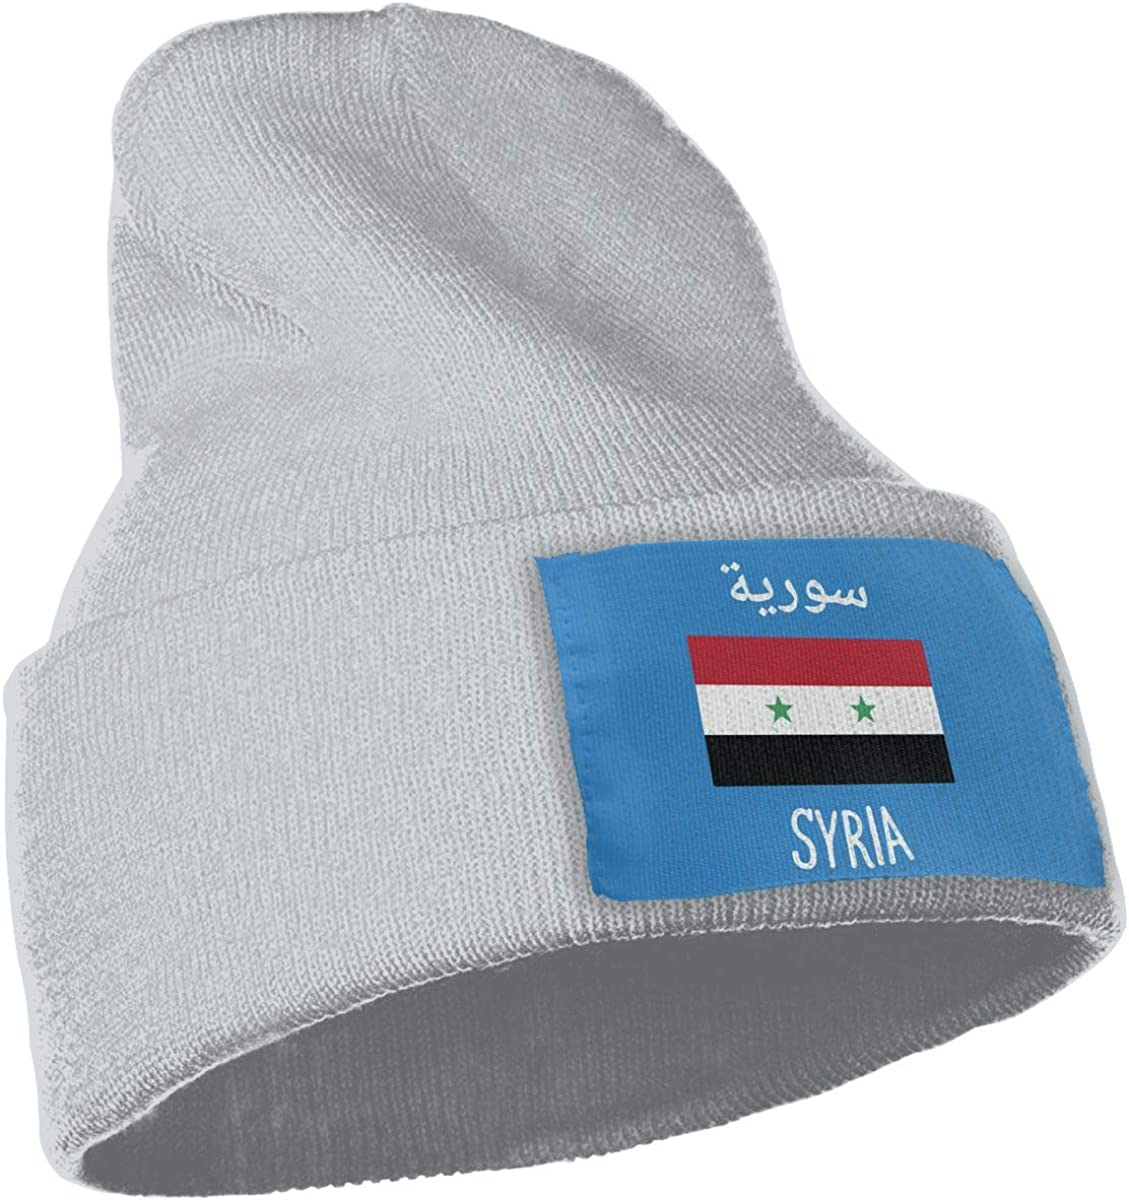 COLLJL-8 Men /& Women Syria Flag Outdoor Stretch Knit Beanies Hat Soft Winter Knit Caps